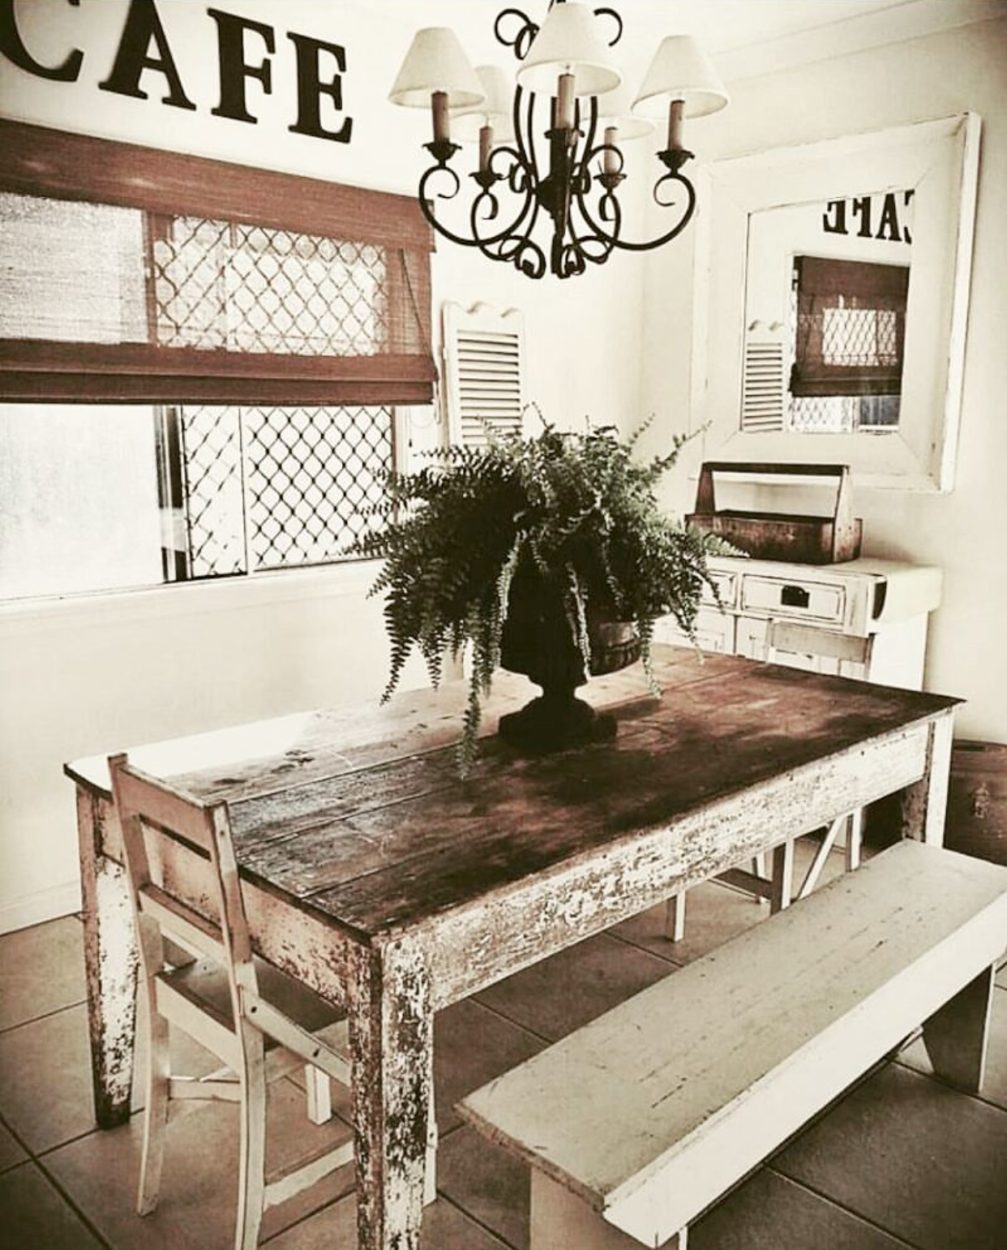 Salvaged farmhouse home tour with the Vintage Bliss. Turn your flea market , thrift store, and bargain finds into a farmhouse look. Home decor doesn't have to be expensive. This beautiful dining room is chipy and shabby and wonderful. Come see the rest of her home.